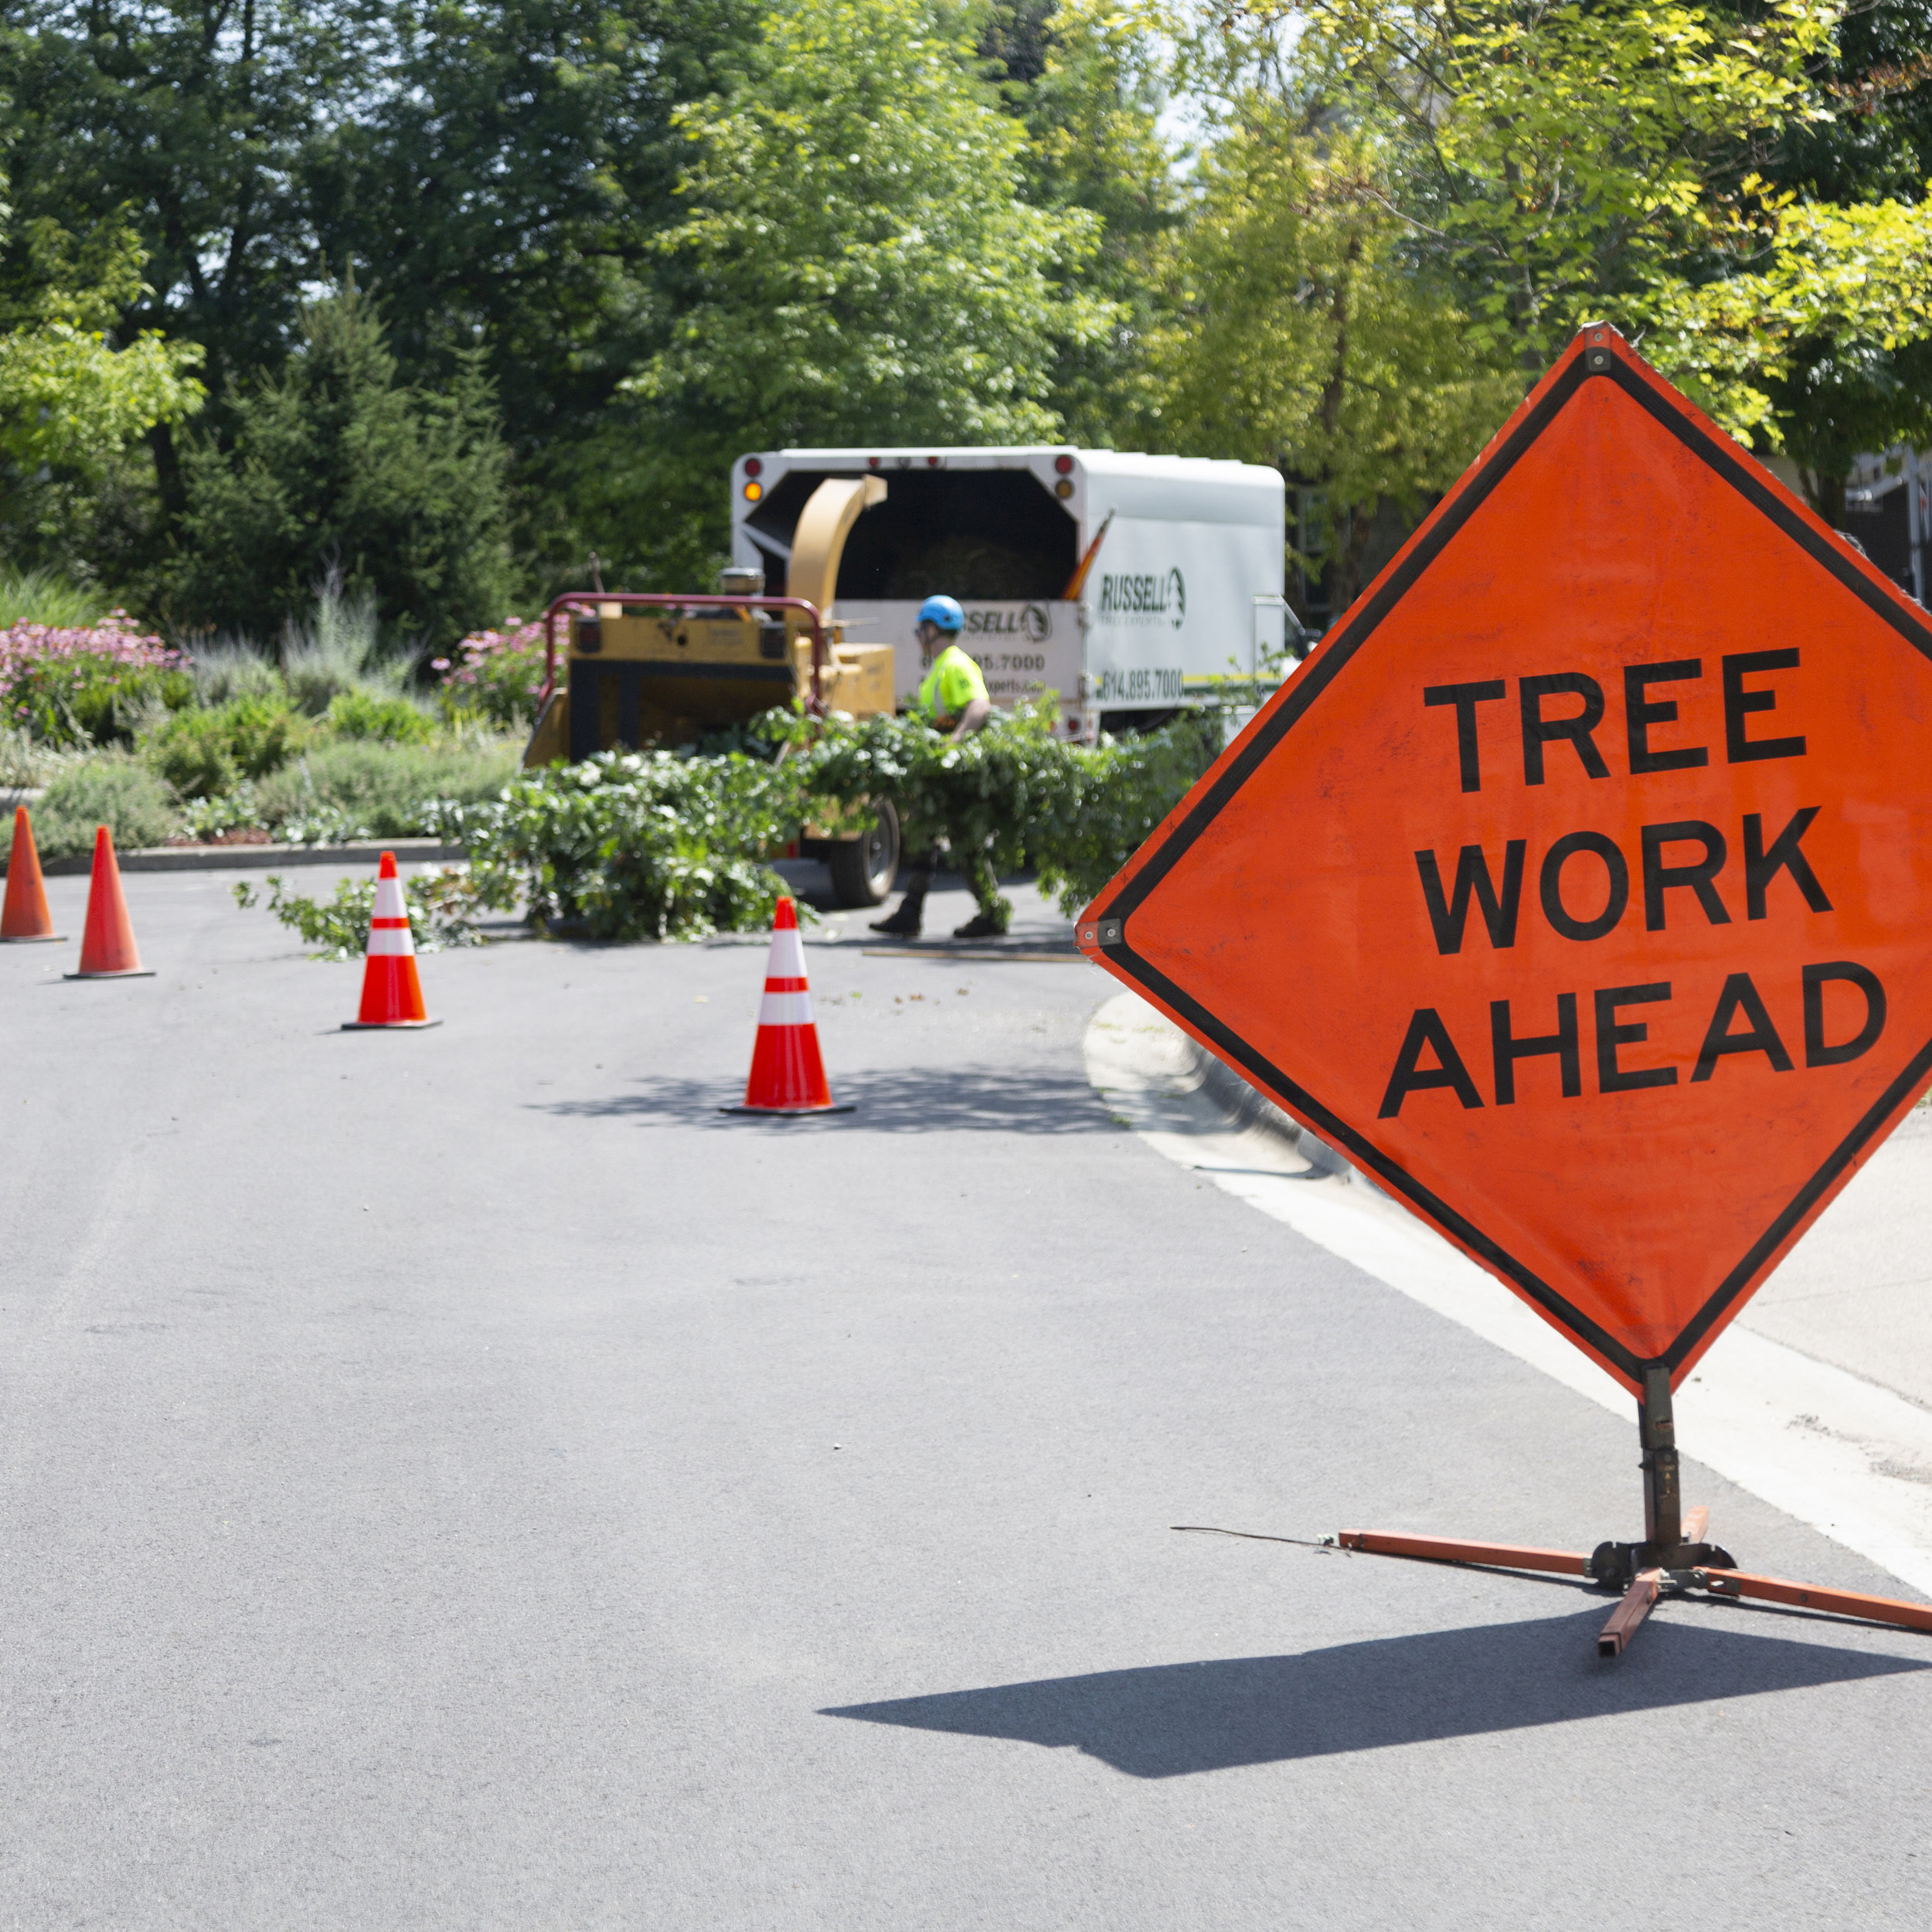 Street Tree Pruning - We're experts in pruning trees to clear city roadways of overhanging limbs.